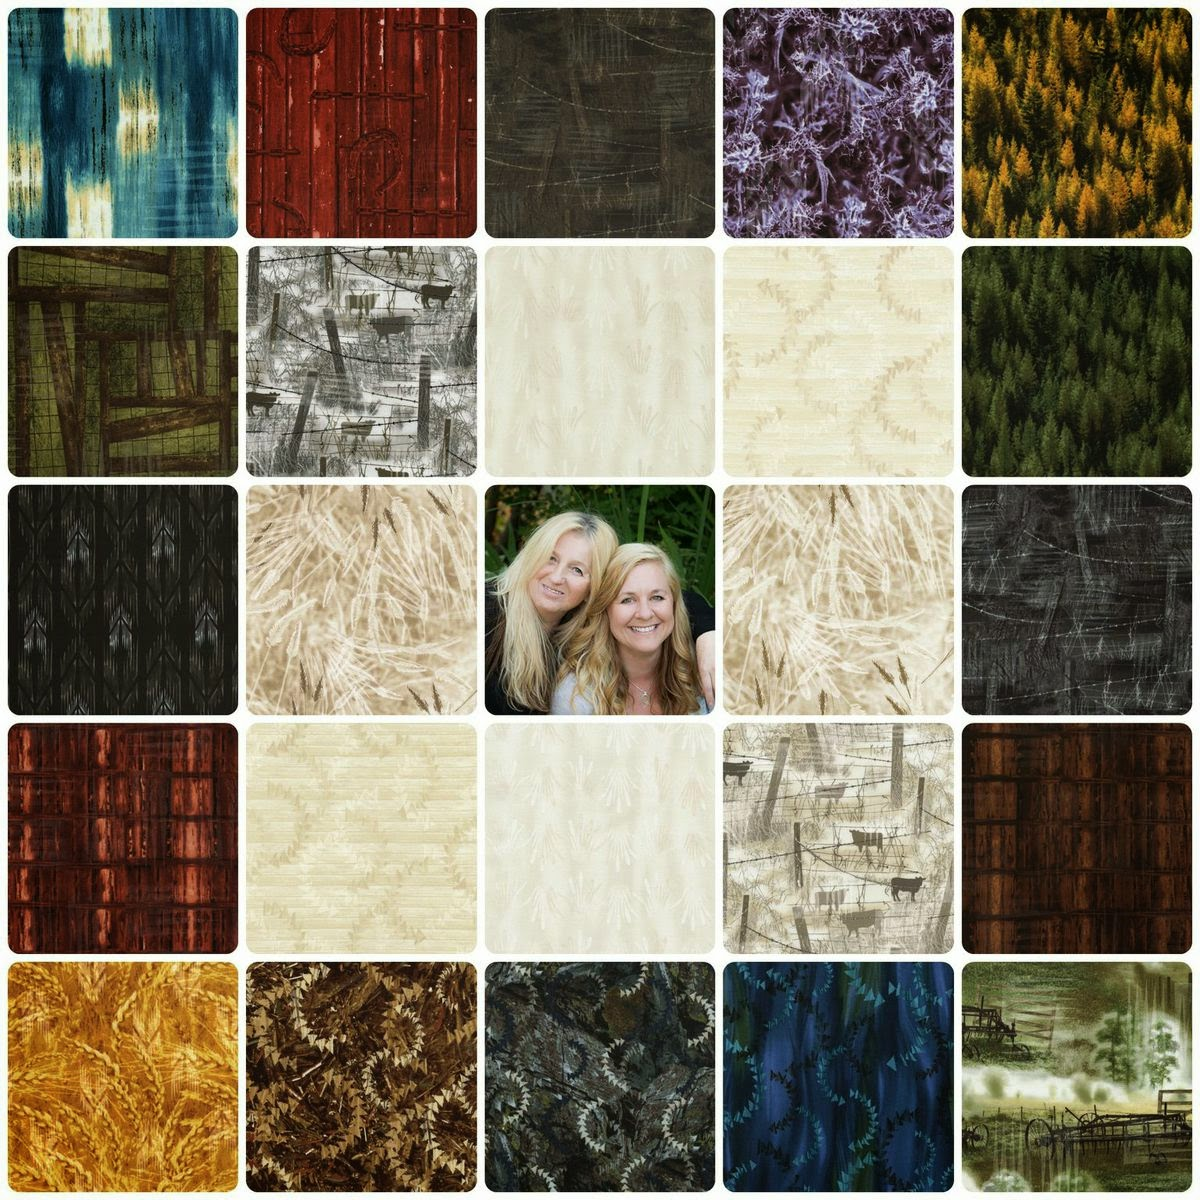 http://www.ttfabrics.com/collection/the-reclaimed-west-by-judy-judel-niemeyer/?product_count=30